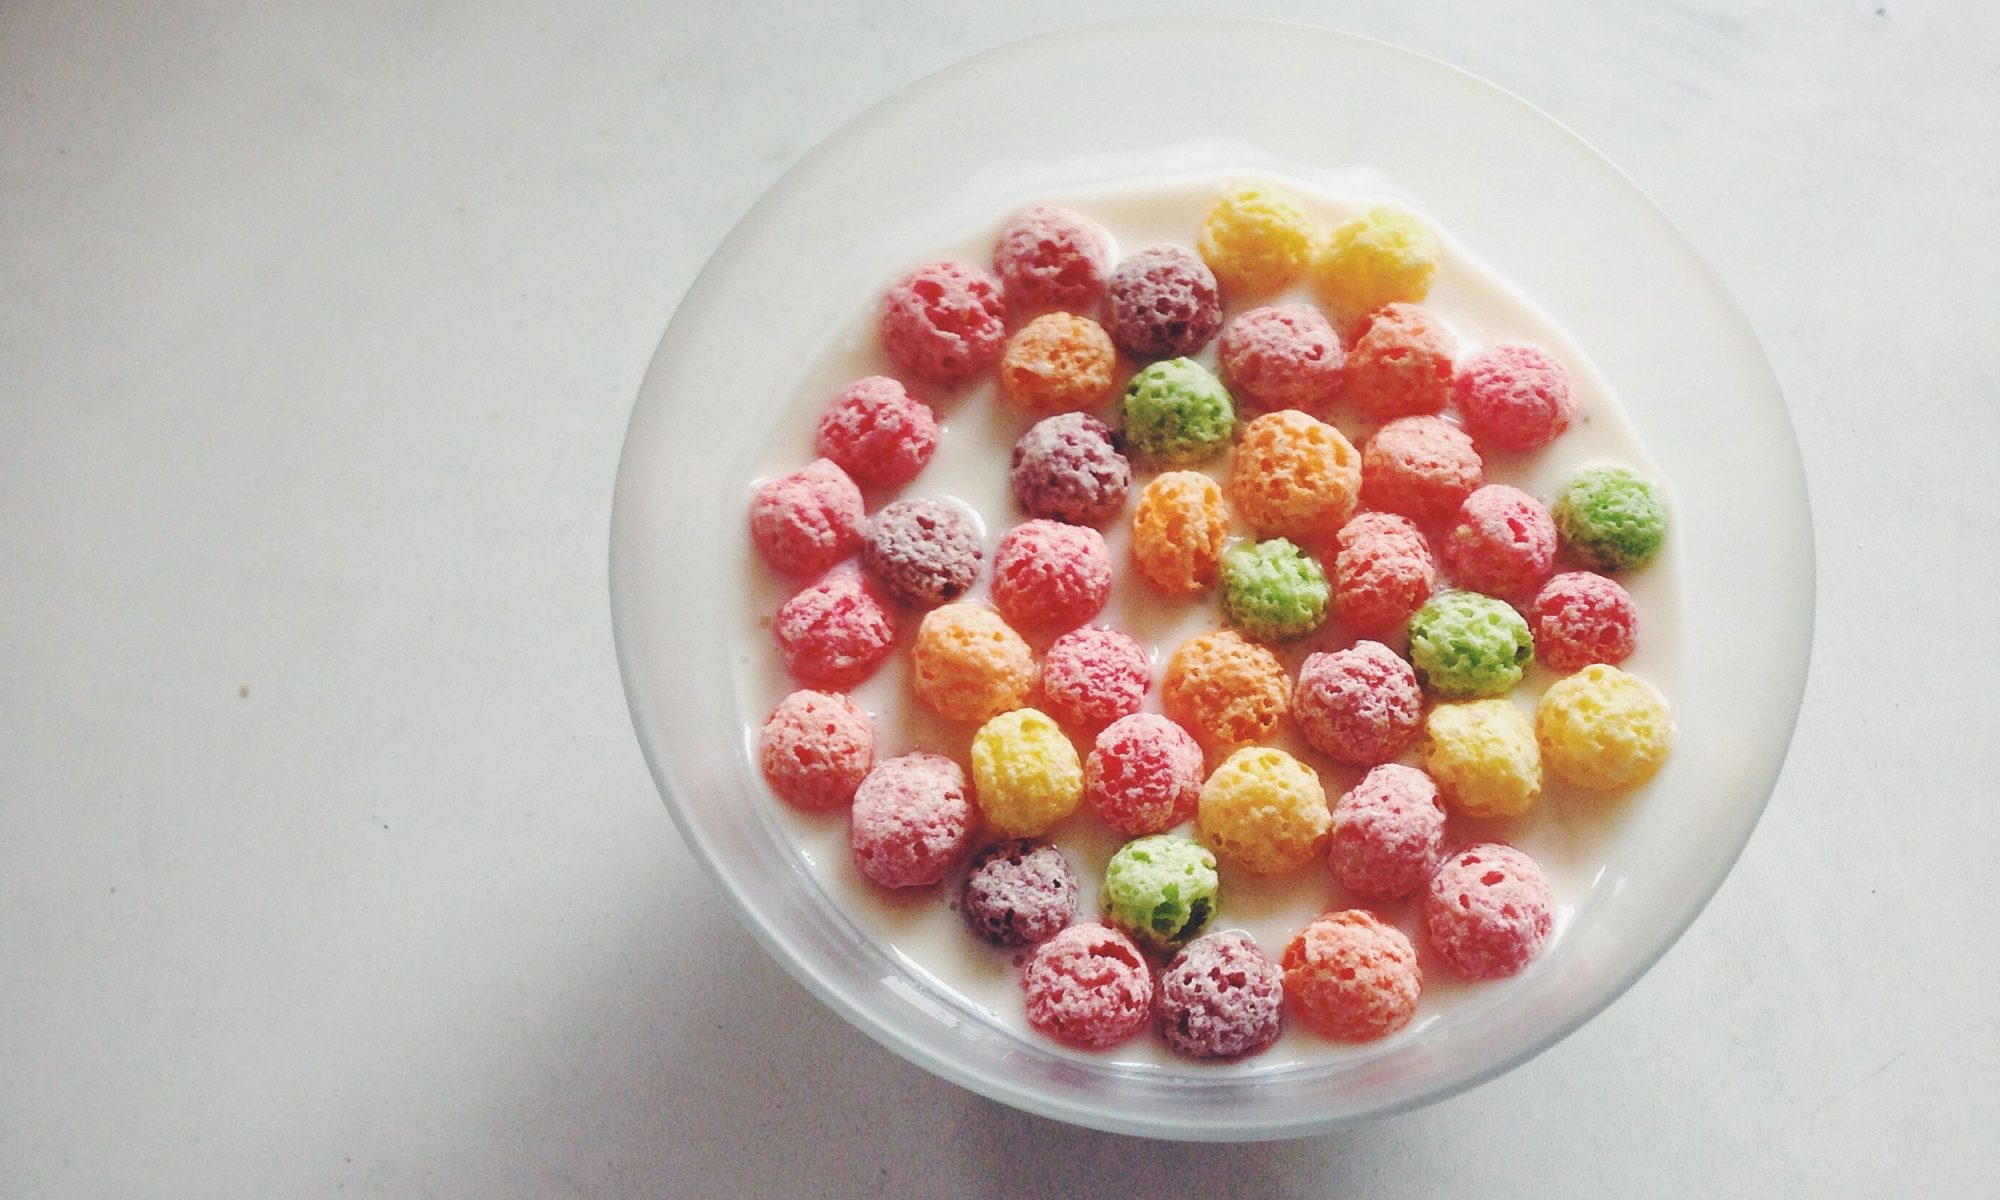 EC: Trix Is Naturally Colored Now, But It Doesn't Make the Cereal Healthier